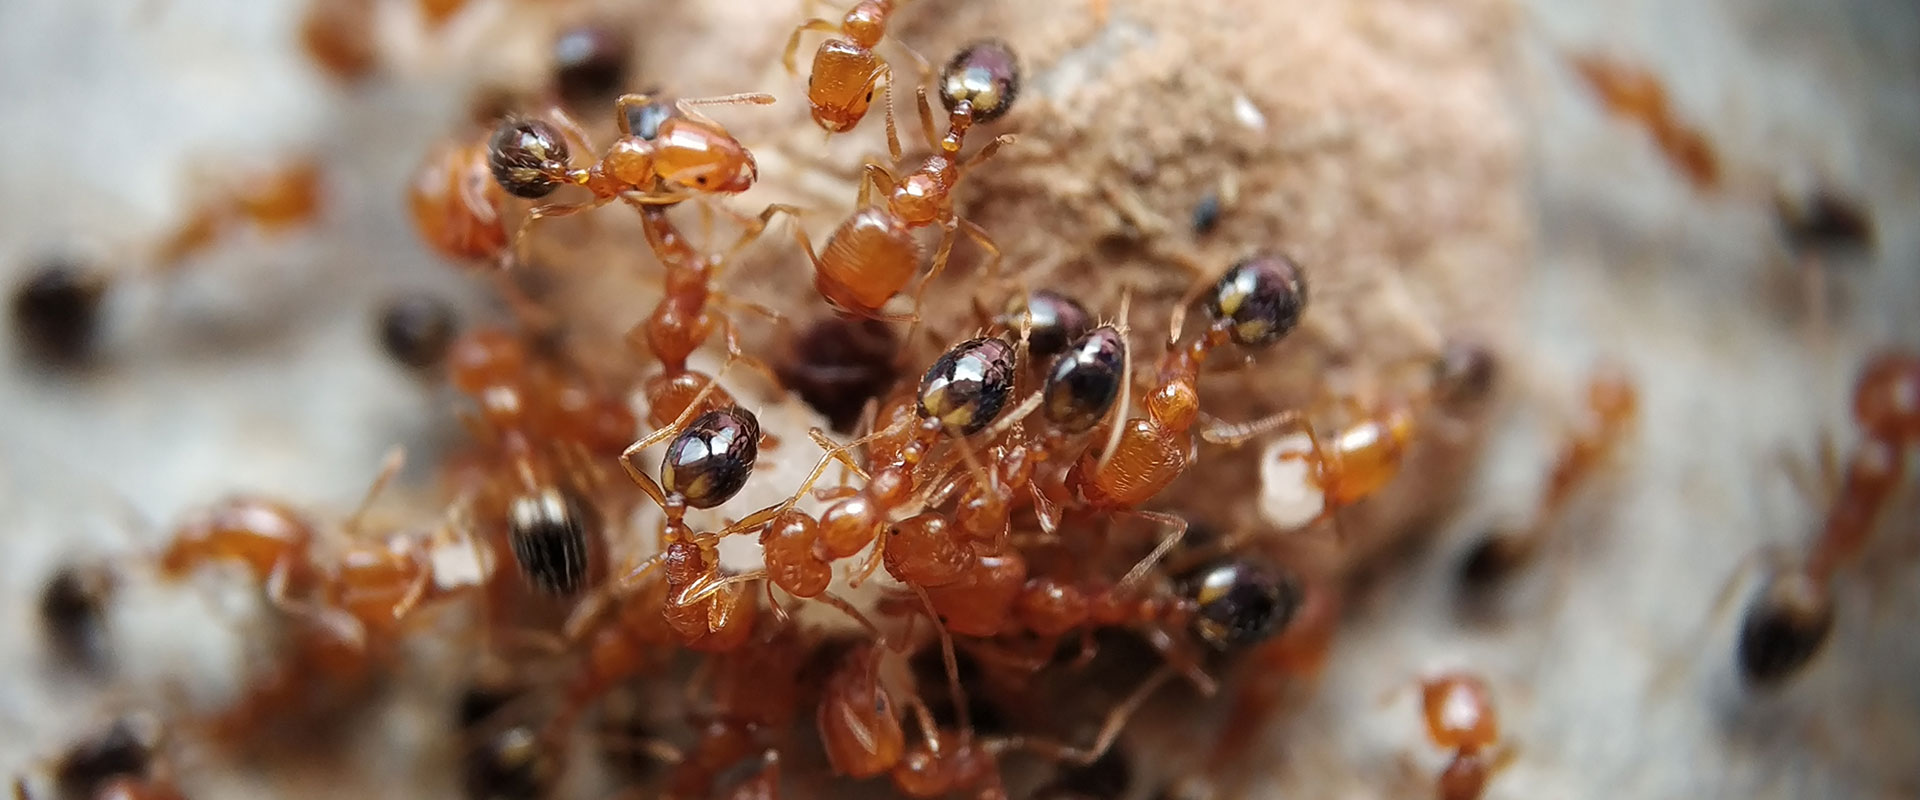 a colony of tropical fire ants